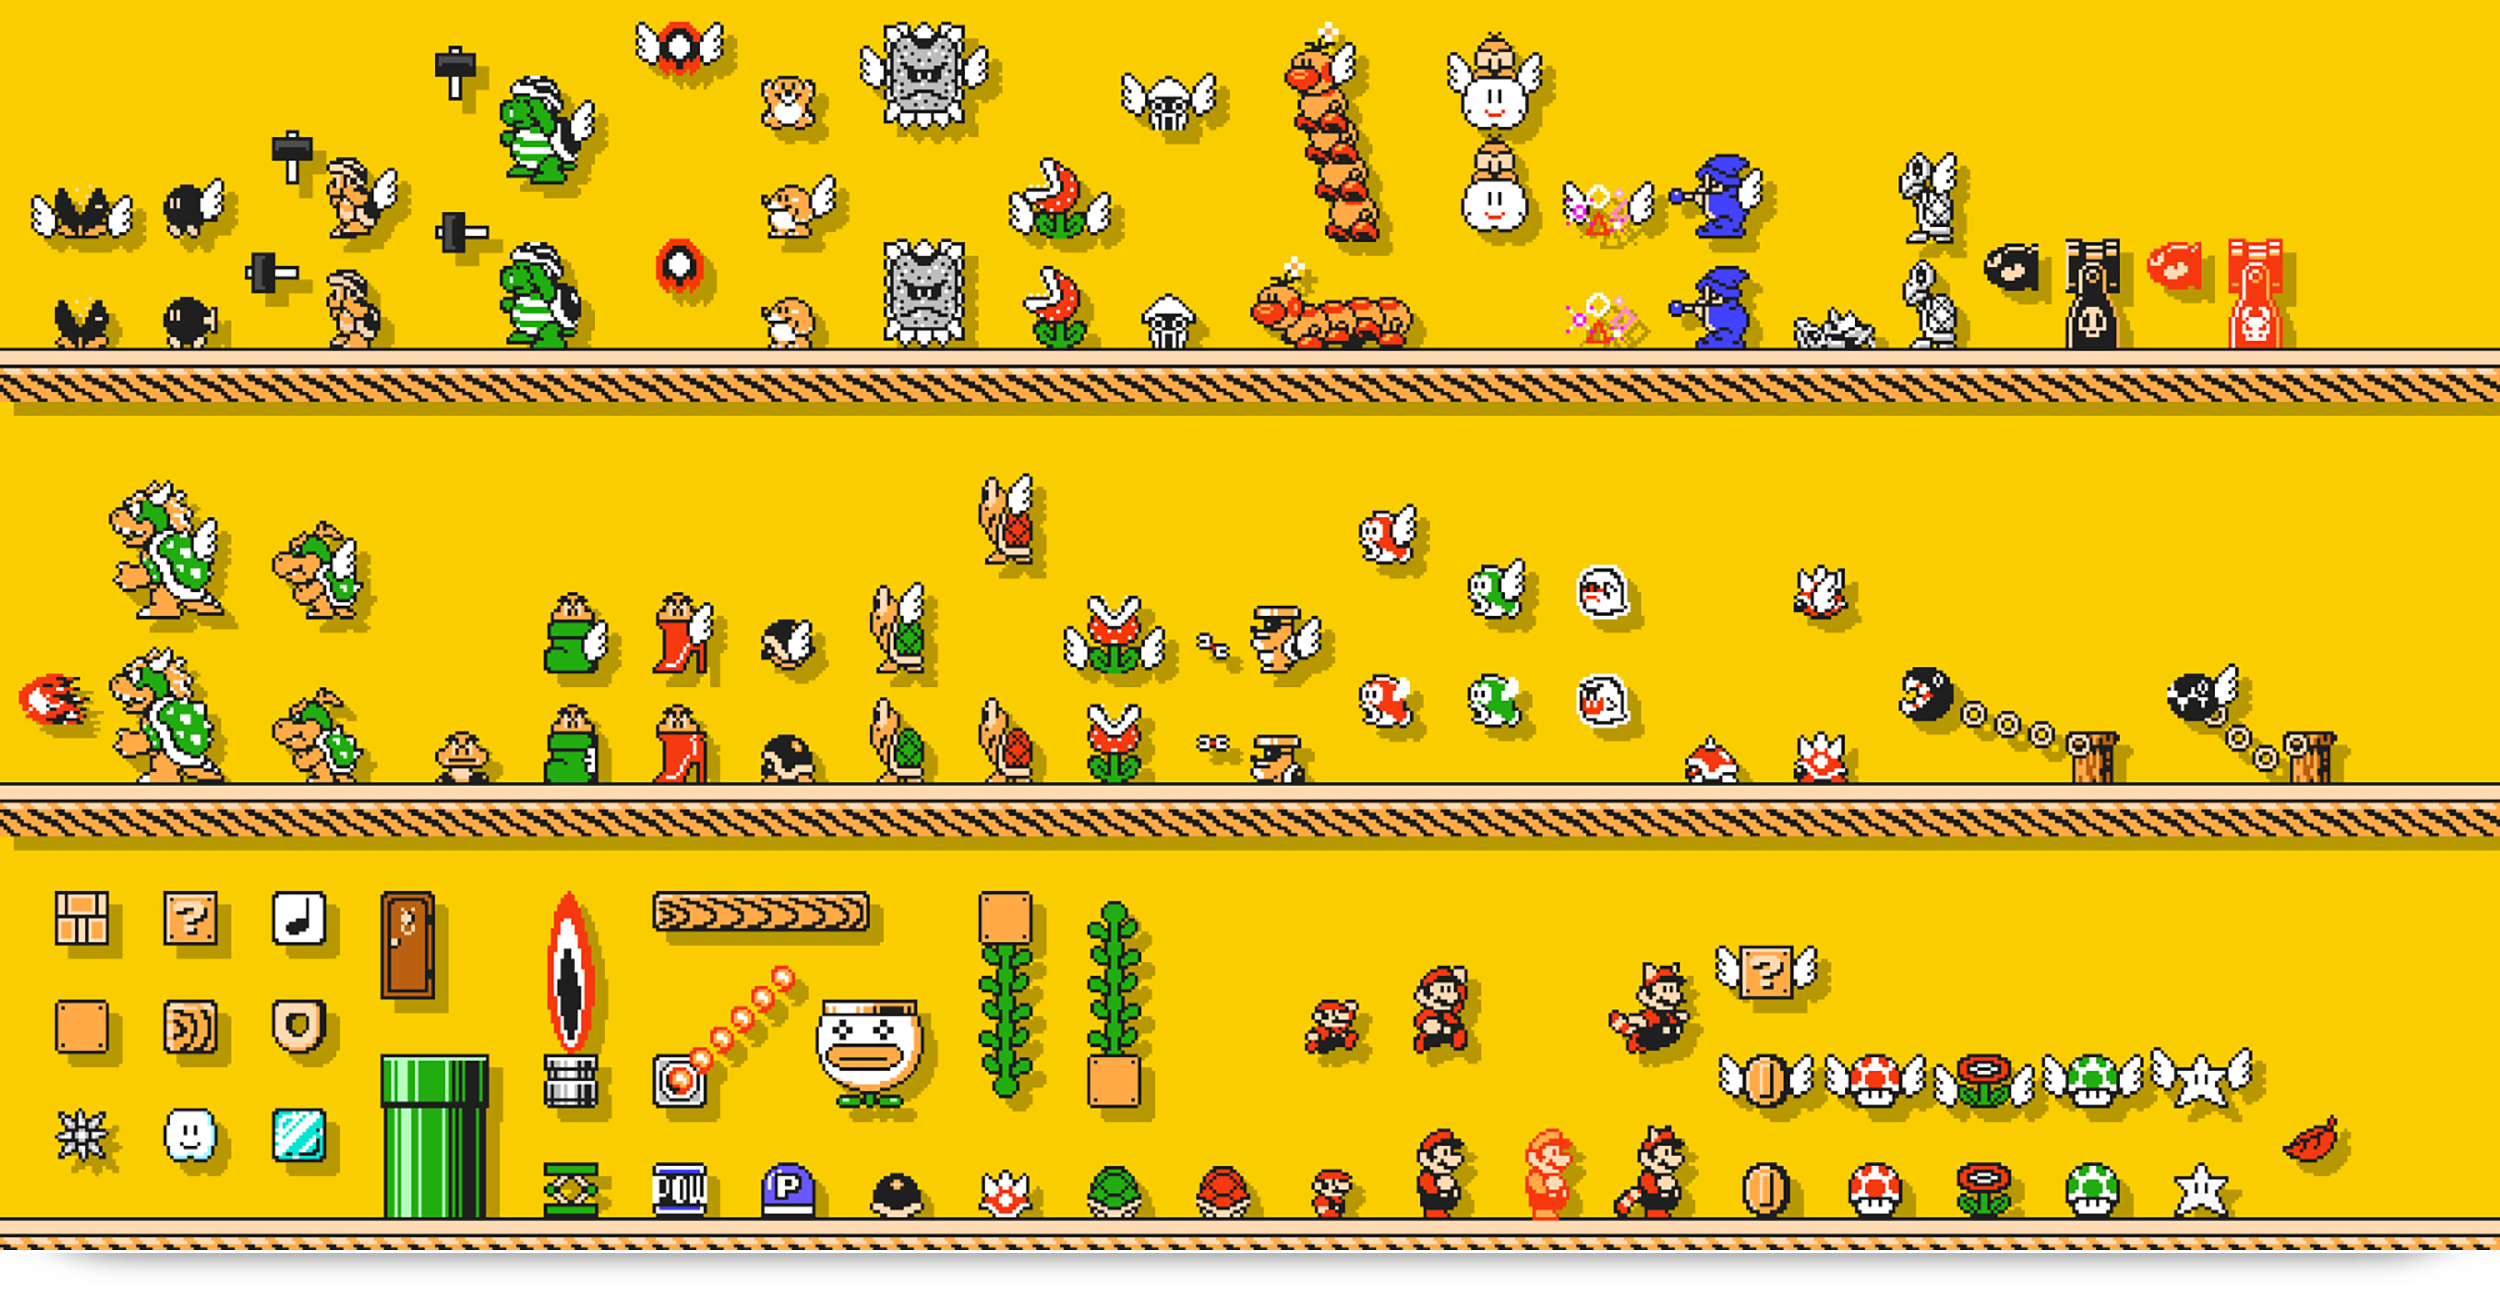 The Top 10 Things That Should be in Super Mario Maker for Switch Koopalings World Map on kano world map, nintendo world map, ventus world map, kirby world map, super mario galaxy world map, mushroom world map, dracula world map, shadow the hedgehog world map, super mario kart world map, raphael world map, sly cooper world map,